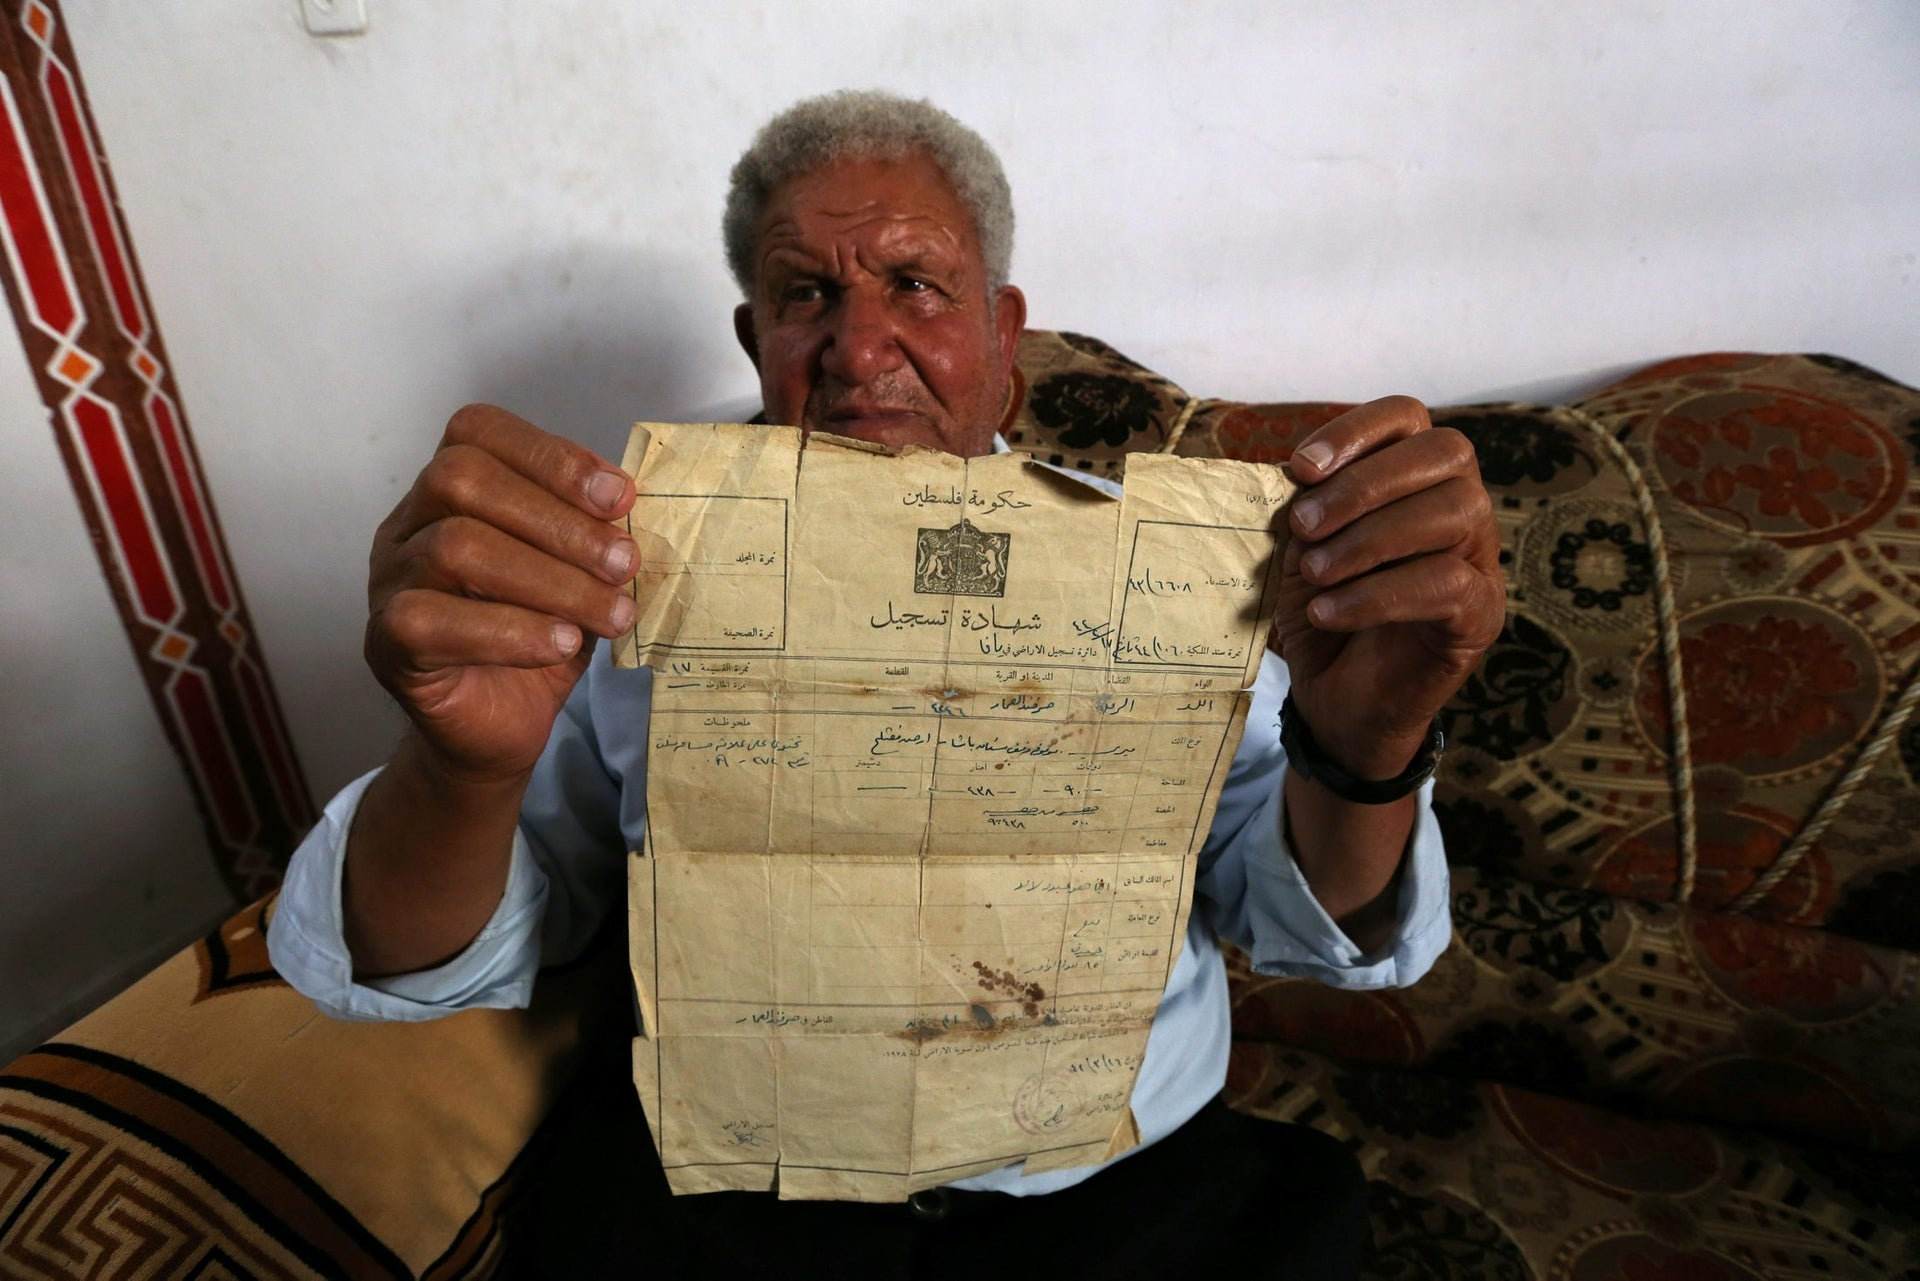 Palestinian Ahmed Jarghoun, 75, displays a land registration certificate from the British era, in Khan Younis in the southern Gaza Strip June 18, 2018. Picture taken June 18, 2018.